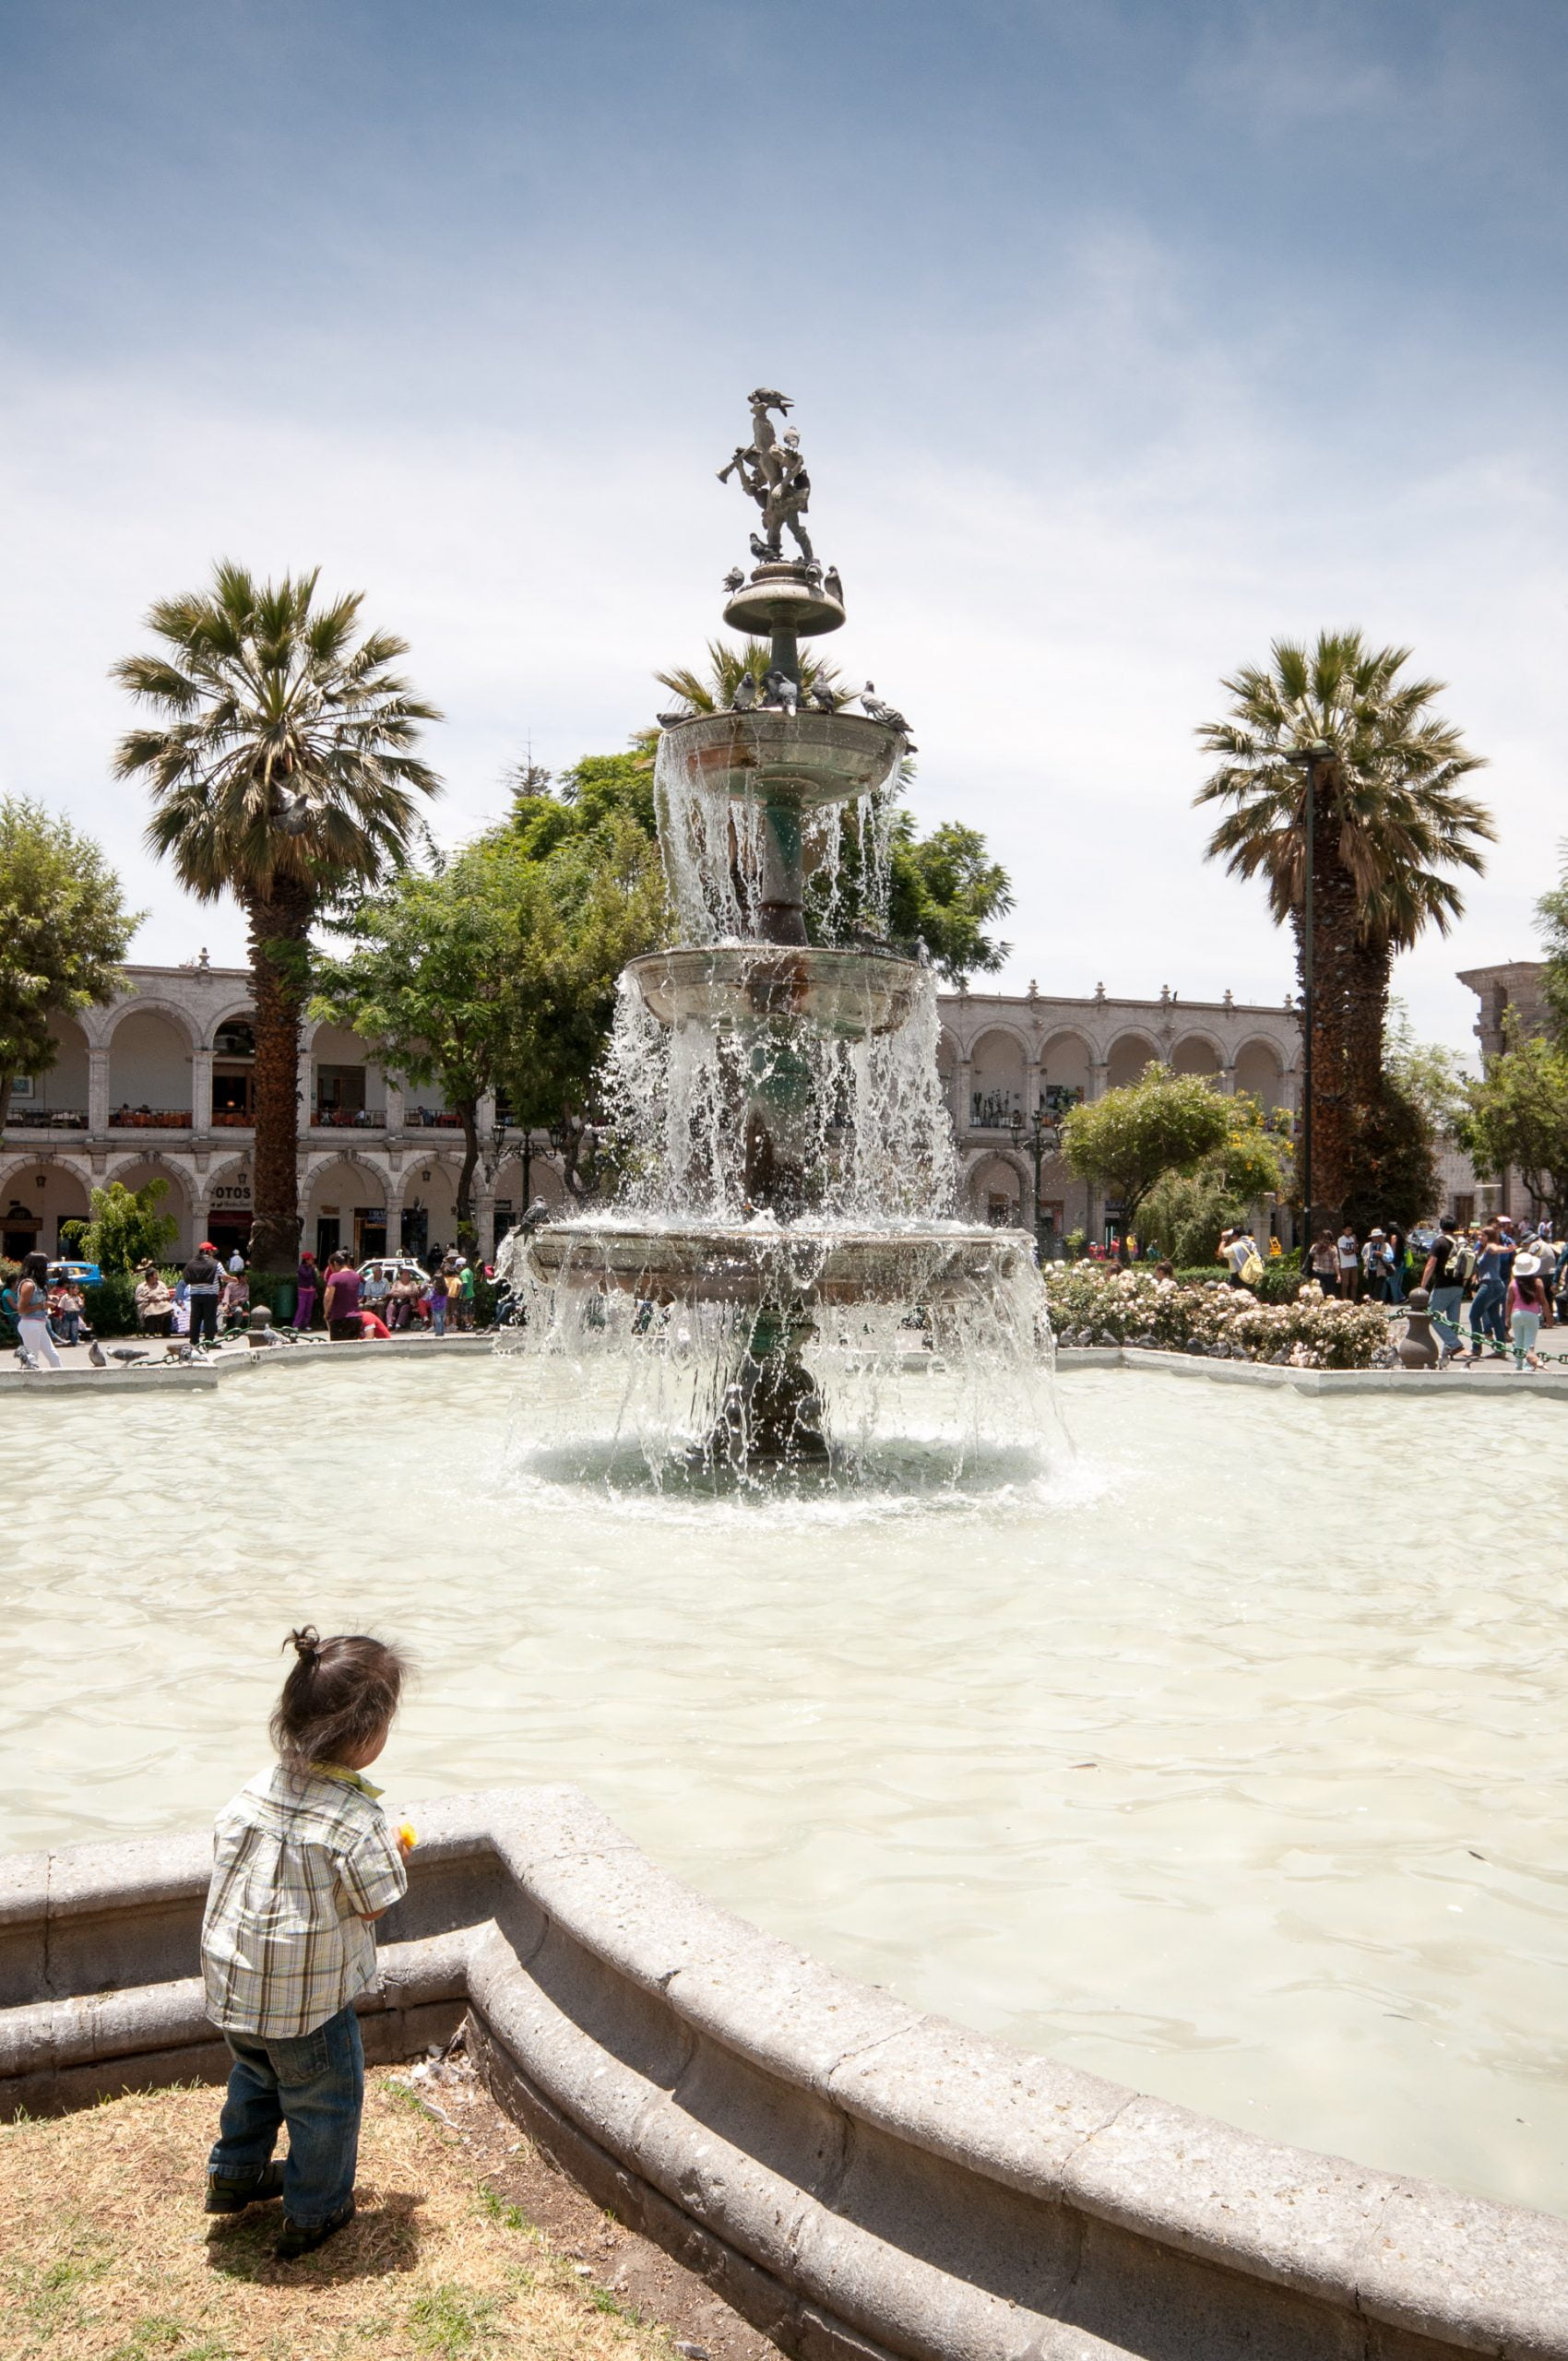 arequipa fontaine scaled - Les globe blogueurs - blog voyage nature